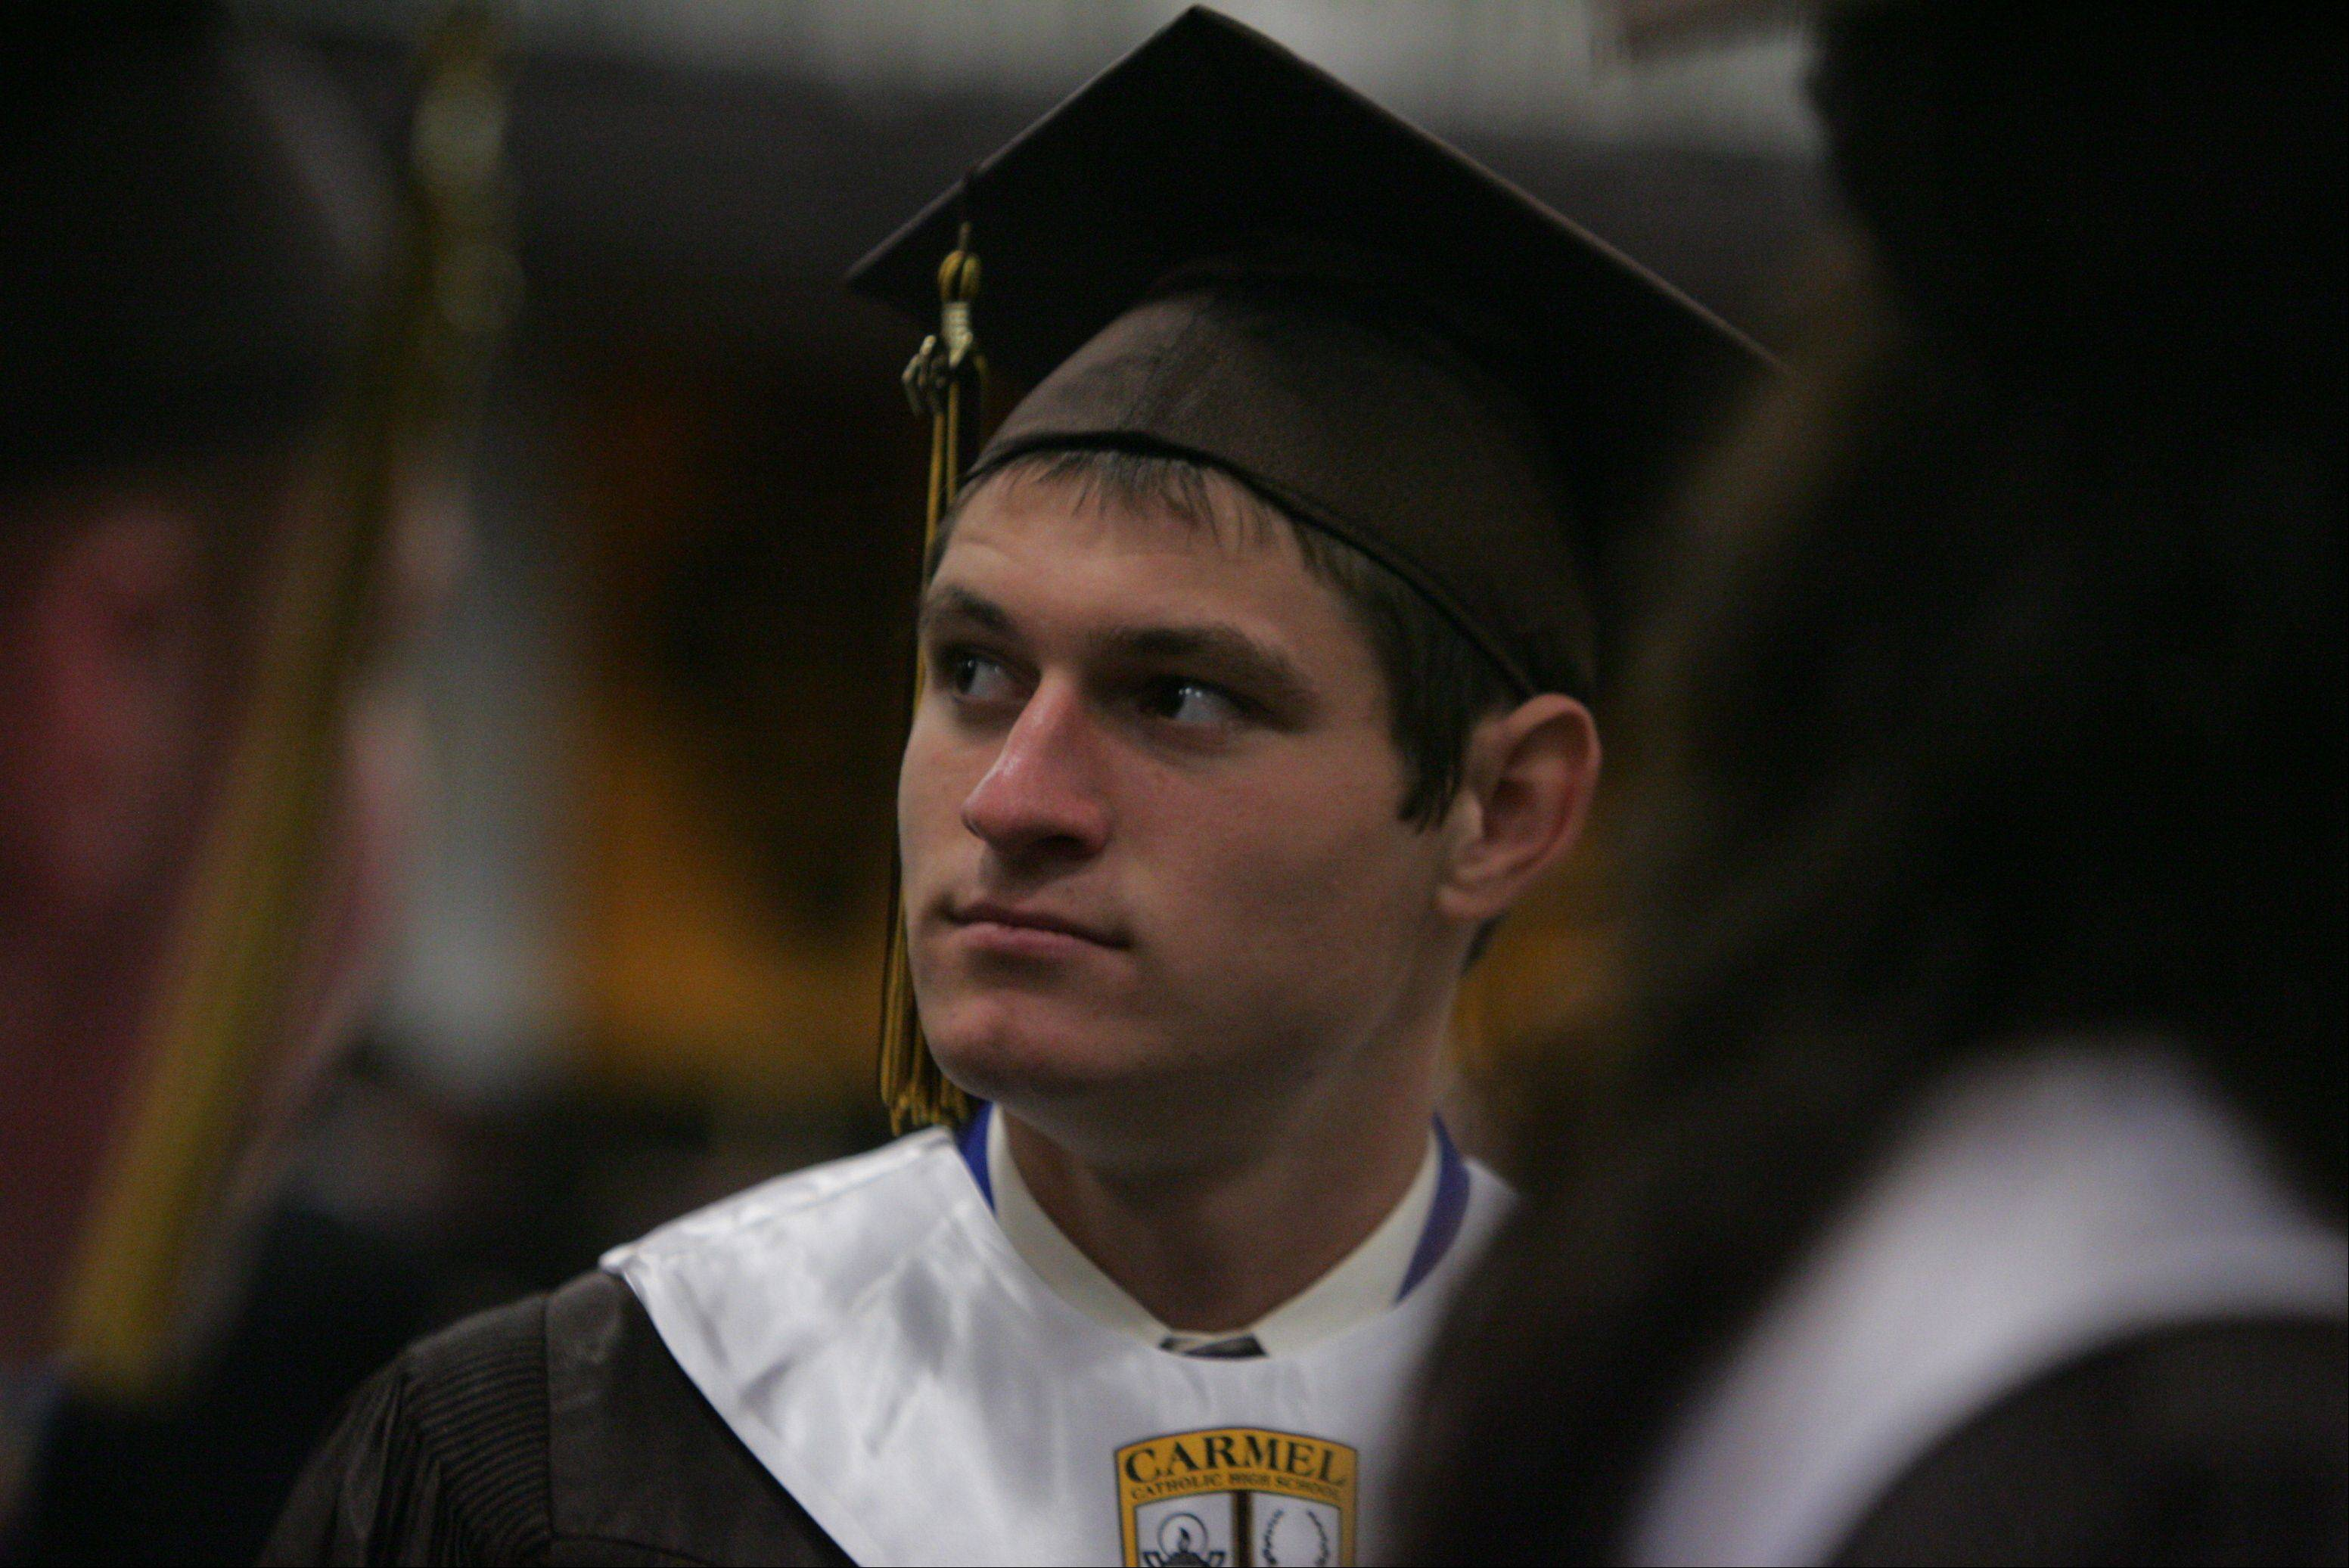 Images from the Carmel Catholic High School graduation on Thursday, May 31 in Mundelein.